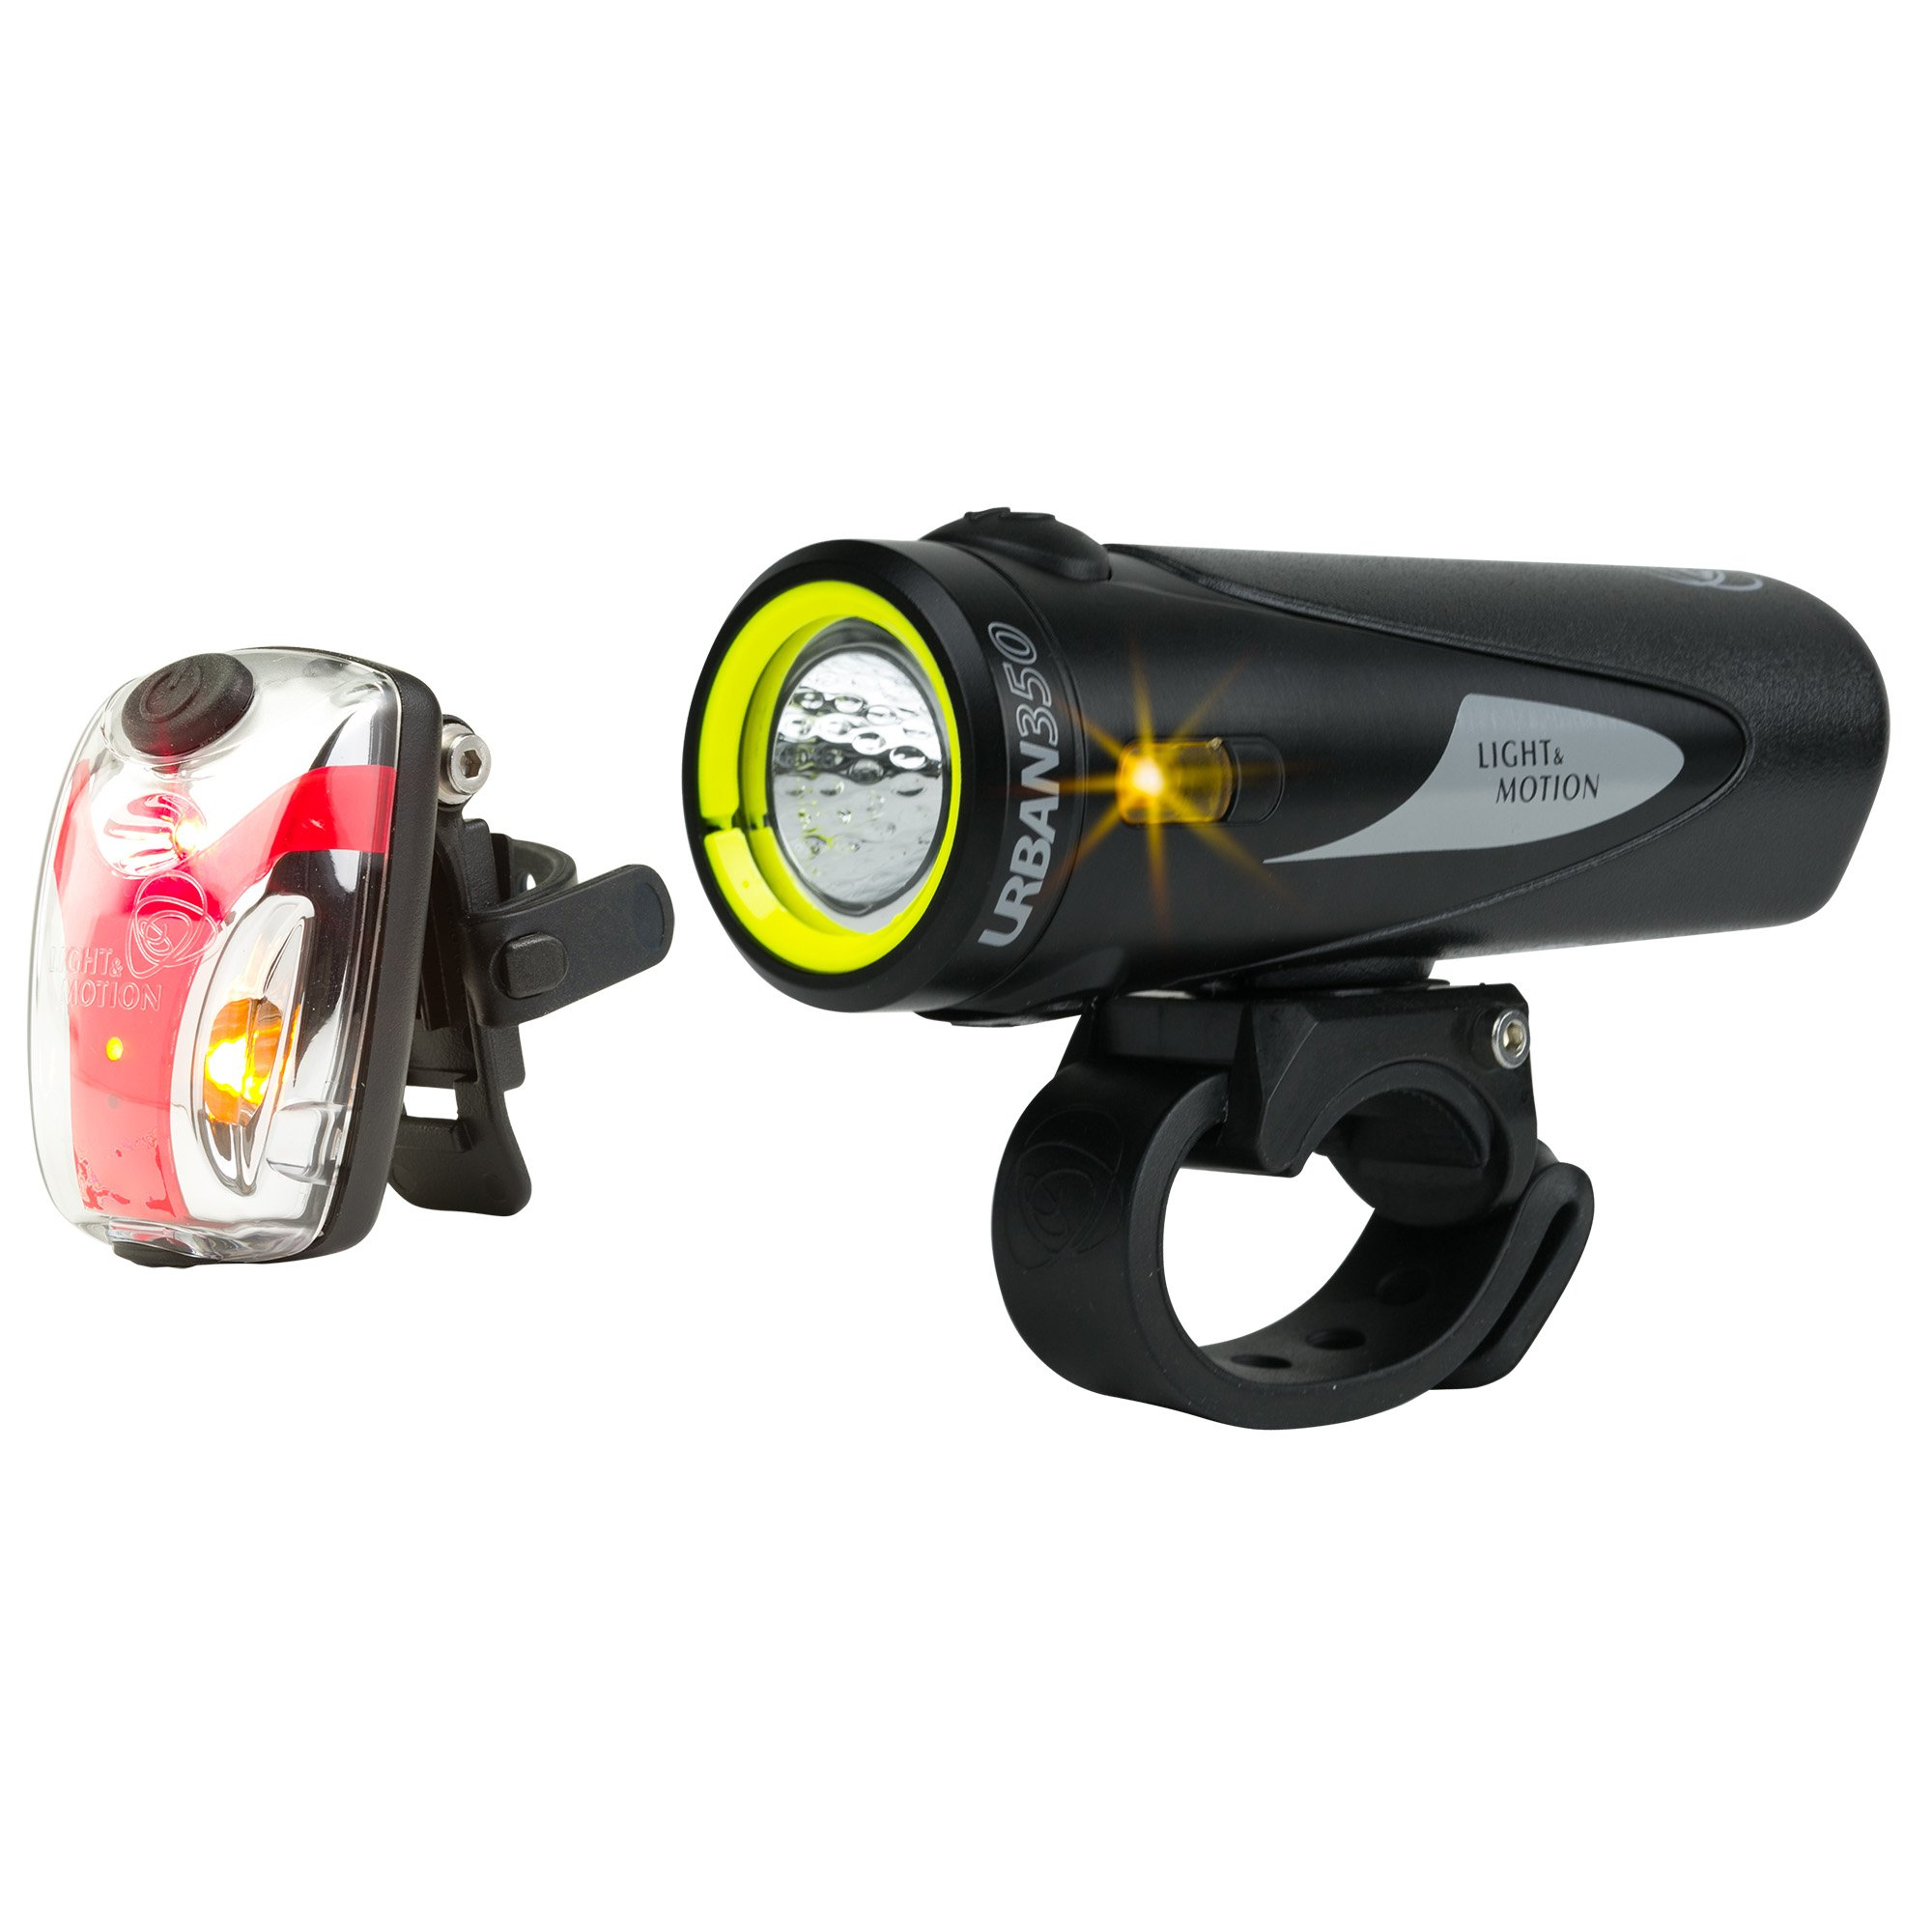 Light & Motion Urban 350 Combo Bike Light Kit